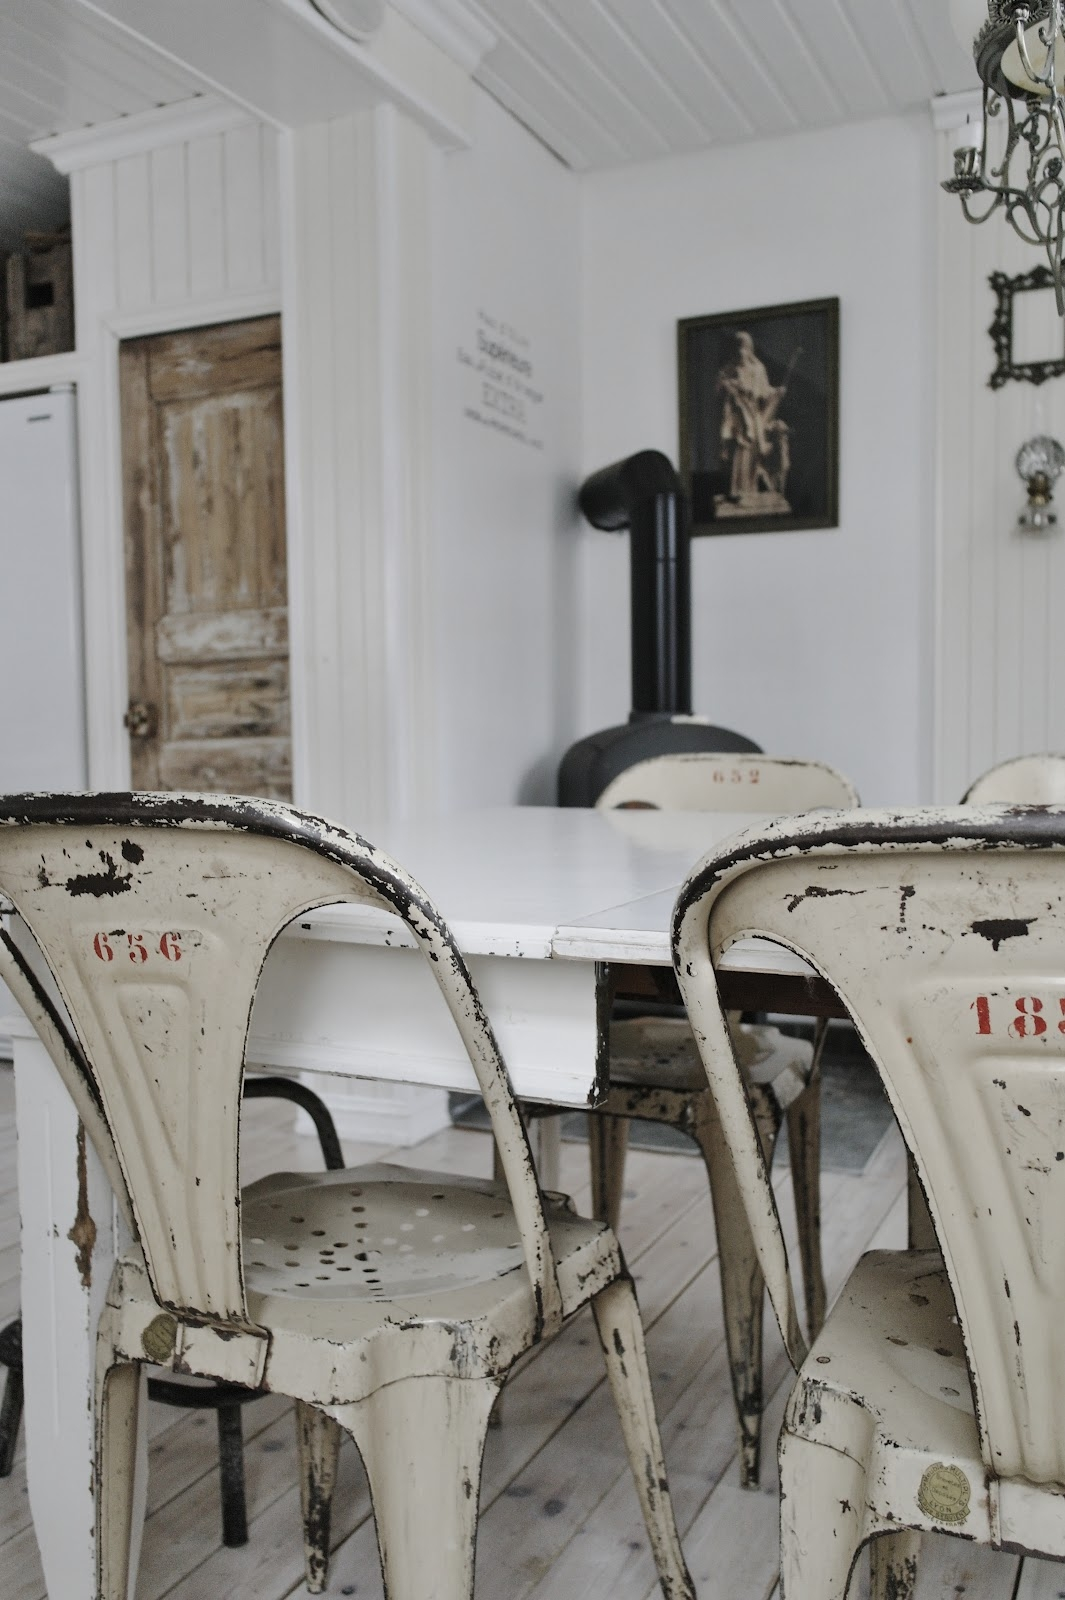 Charmant It Features Metal Chairs With A Distressed And Weathered Look And Original  Numbers On The Backrest. They Are Accompanied By A White, ...